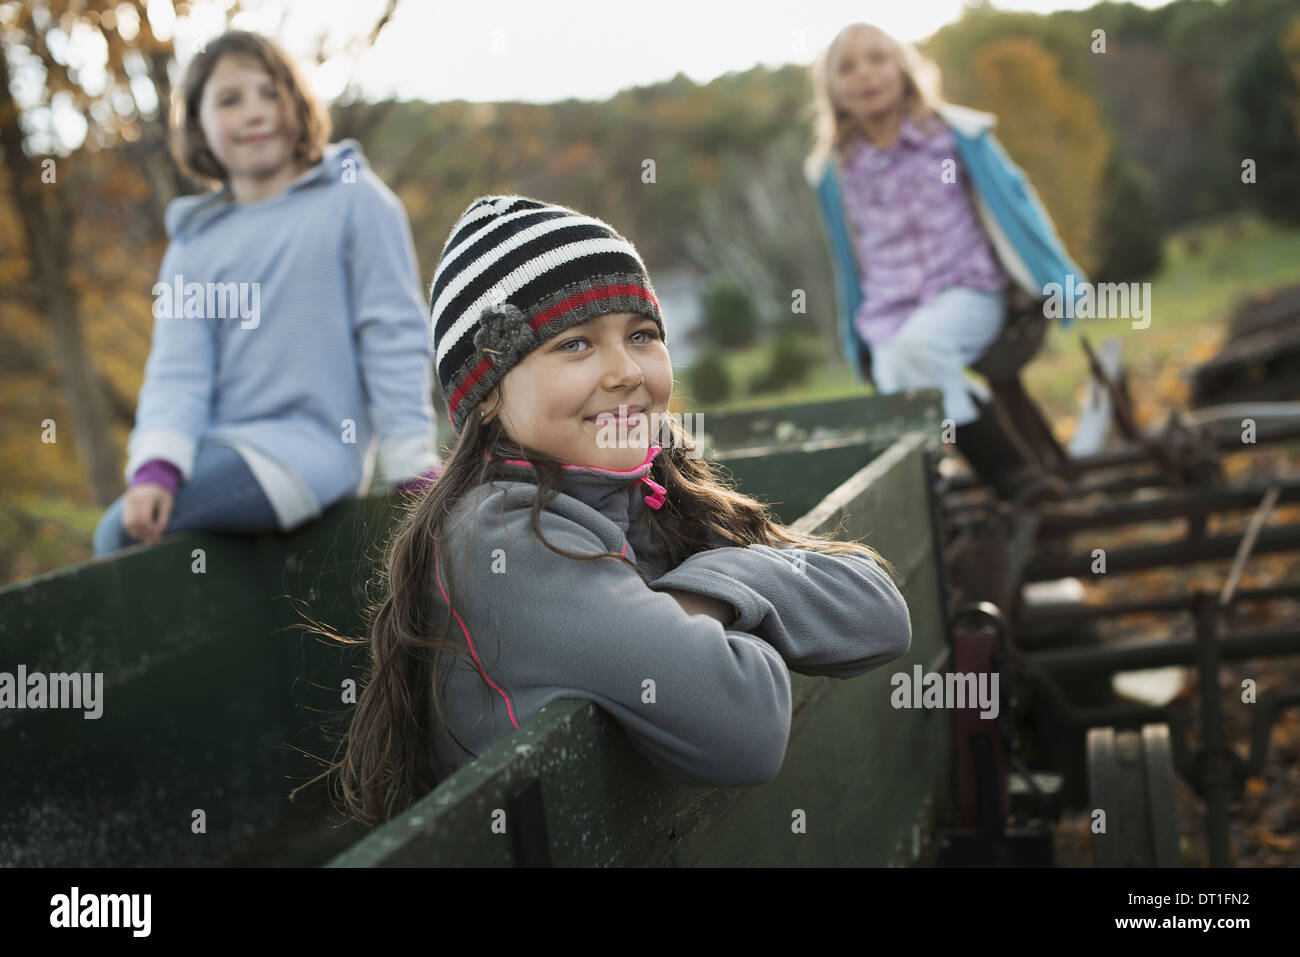 Three young girls out and about on the farm On an old trailer - Stock Image